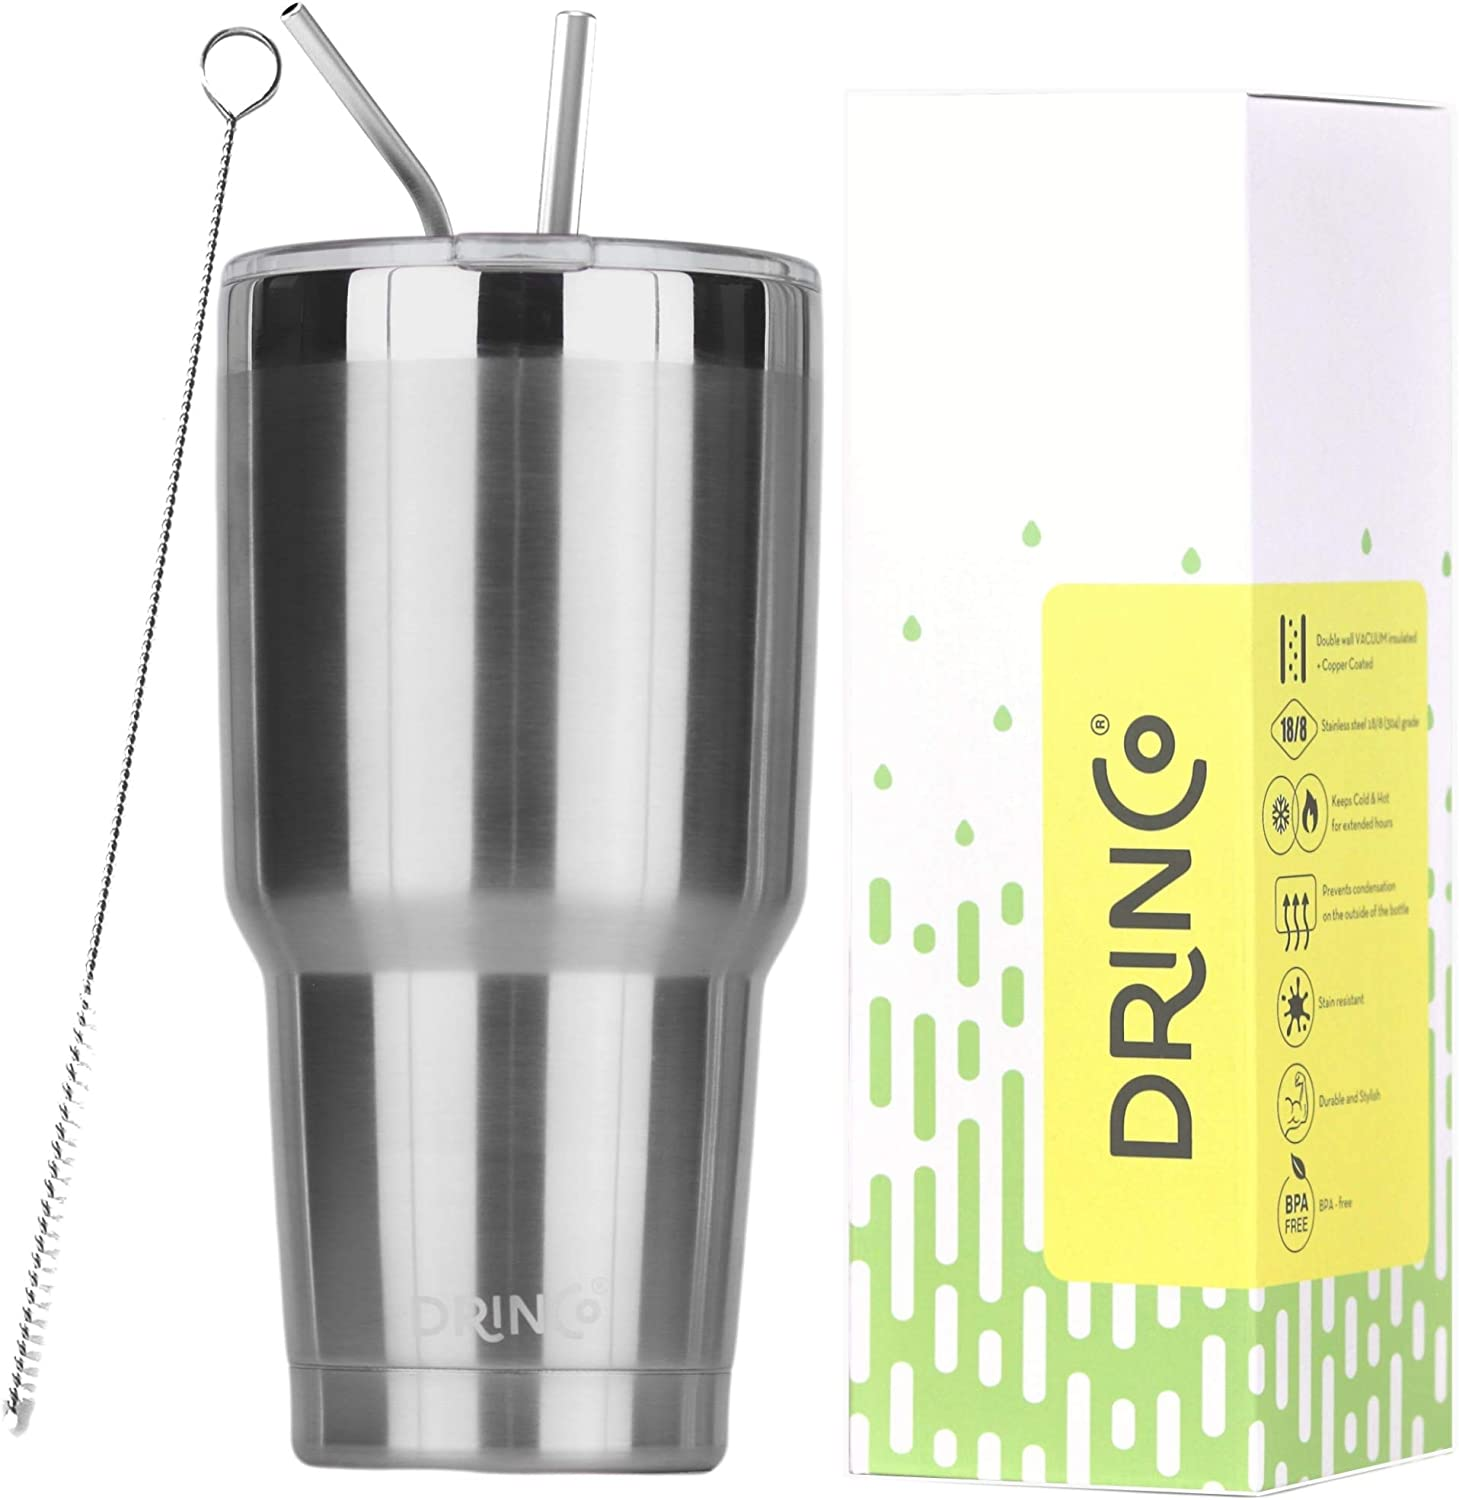 DRINCO - 30 oz Stainless Steel Tumbler | Double Walled Vacuum Insulated Mug With Spill Proof Lid, 2 Straws, For Hot & Cold Drinks (Stainless Steel, 30 oz)